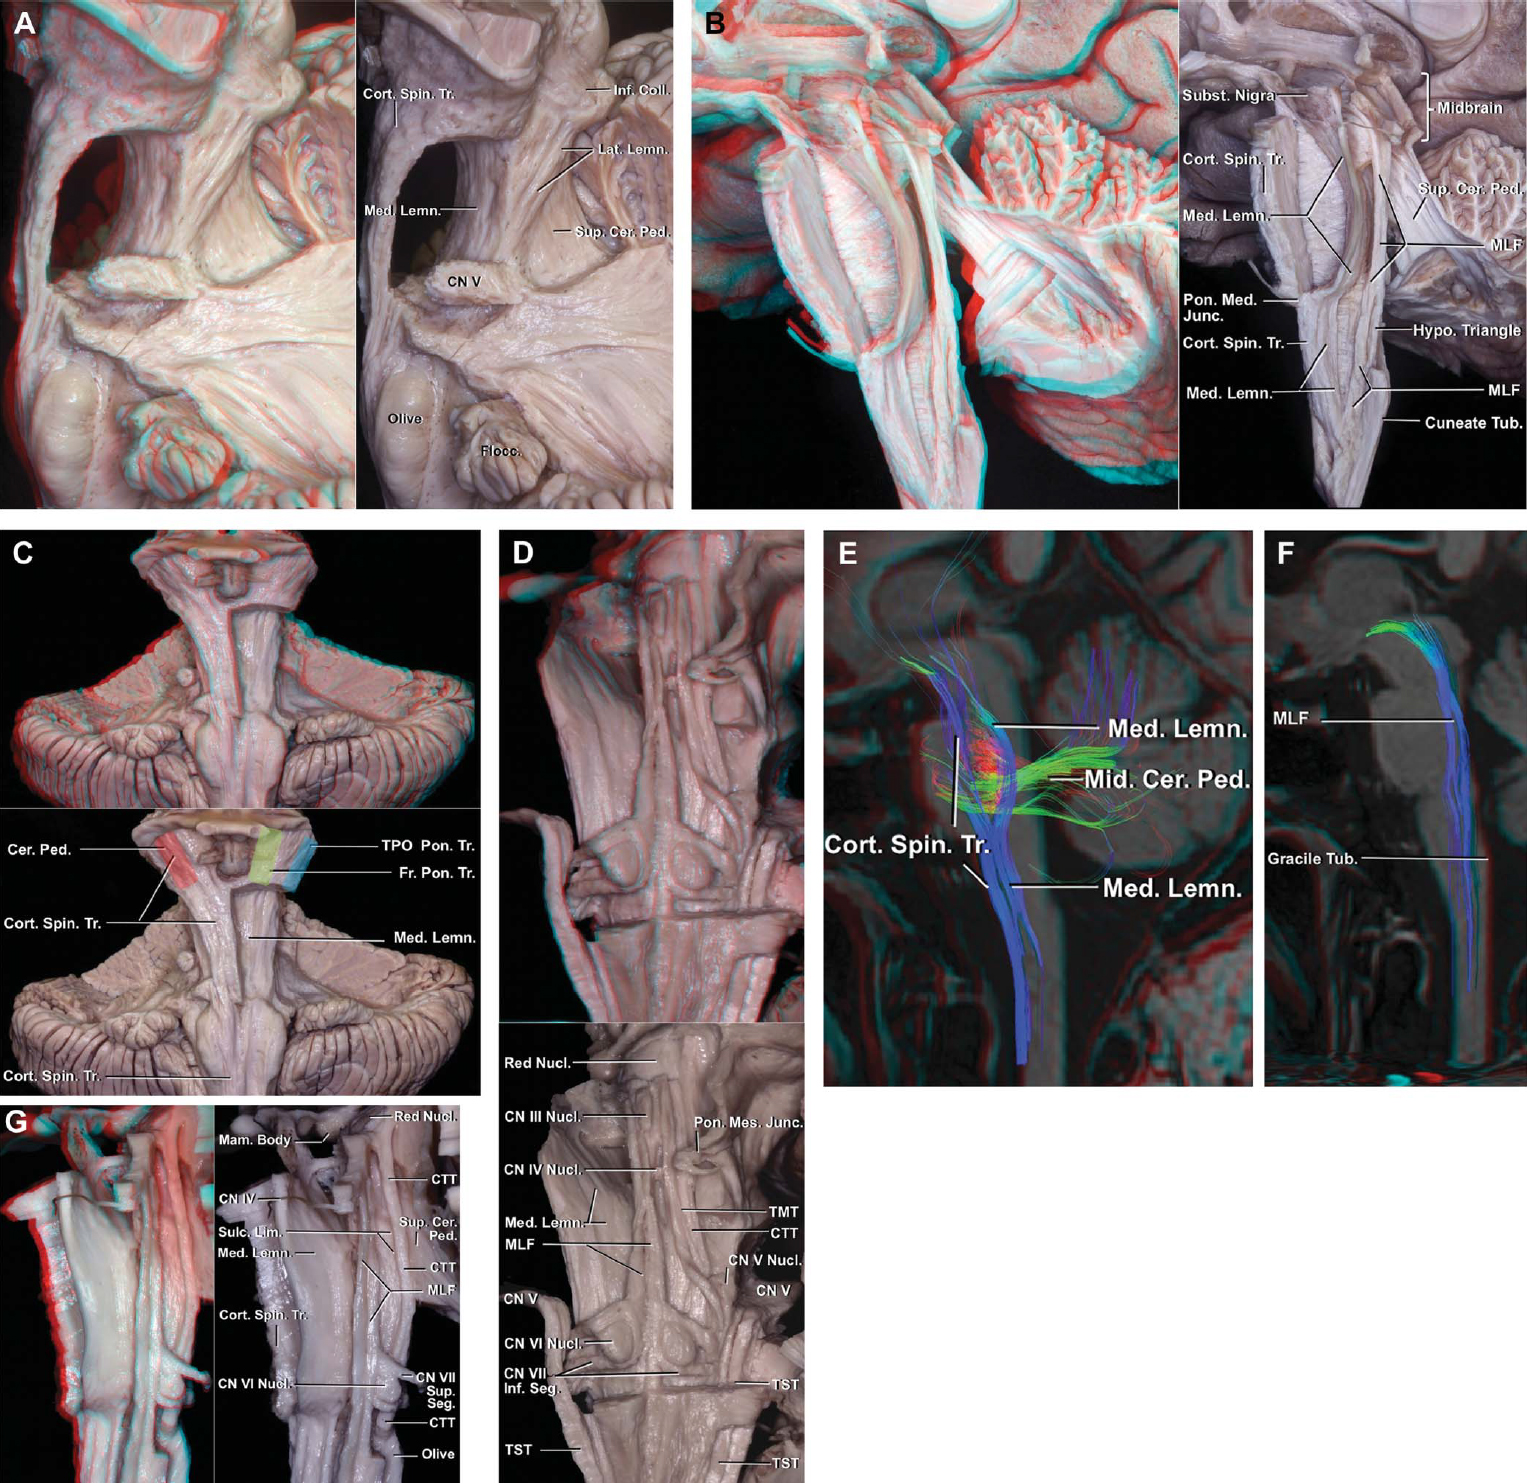 Figure 2. Fiber tracts of the brainstem. A, left lateral view. The transverse pontine fibers and some of the corticopontine tracts have been removed to expose the medial and lateral lemnisci. The lateral lemniscus is located lateral to the medial lemniscus and superior cerebellar peduncle. B, lateral view in another specimen. The medial lemniscus and medial longitudinal fasciculus have been exposed. The medial lemniscus arises in the gracile and cuneate tubercles and ascends to divide the brainstem into ventral and dorsal parts and to relay in the thalamus. In the medulla, the medial lemniscus is located just behind the pyramids formed by the corticospinal tracts that descend in the ventral medulla. The olive is located lateral to the medial lemniscus. In the pons, the medial lemniscus in the lateral view is concave ventrally. In the midbrain, it ascends dorsal to the cerebral peduncle where its fibers intermingle with the substantia nigra. The medial longitudinal fasciculus curves ventrally at the lower edge of the facial colliculus and passes ventral to the hypoglossal triangle. It crosses the medial lemniscus at the level of the gracile and cuneate tubercles and descends in the ventral funiculus of the spinal cord. C, anterior view showing the relationships of the cerebral peduncle, medial lemniscus, and corticospinal tract in the pons. The ventral fiber tracts in the left half of the pons have been removed to expose the medial lemniscus. In the midbrain, the frontopontine fibers (green) are in the medial one-third, the temporoparieto-occipitopontine fibers (blue) are in the lateral one-third, and the corticospinal and corticobulbar tracts (red) are in the middle one-third of the cerebral peduncle. D, posterior view of the medial longitudinal fasciculus and the trigeminal mesencephalic and spinal tracts. Part of the dorsal pons and midbrain have been removed to expose the left medial lemniscus. The medial longitudinal fasciculus courses adjacent the midline near 